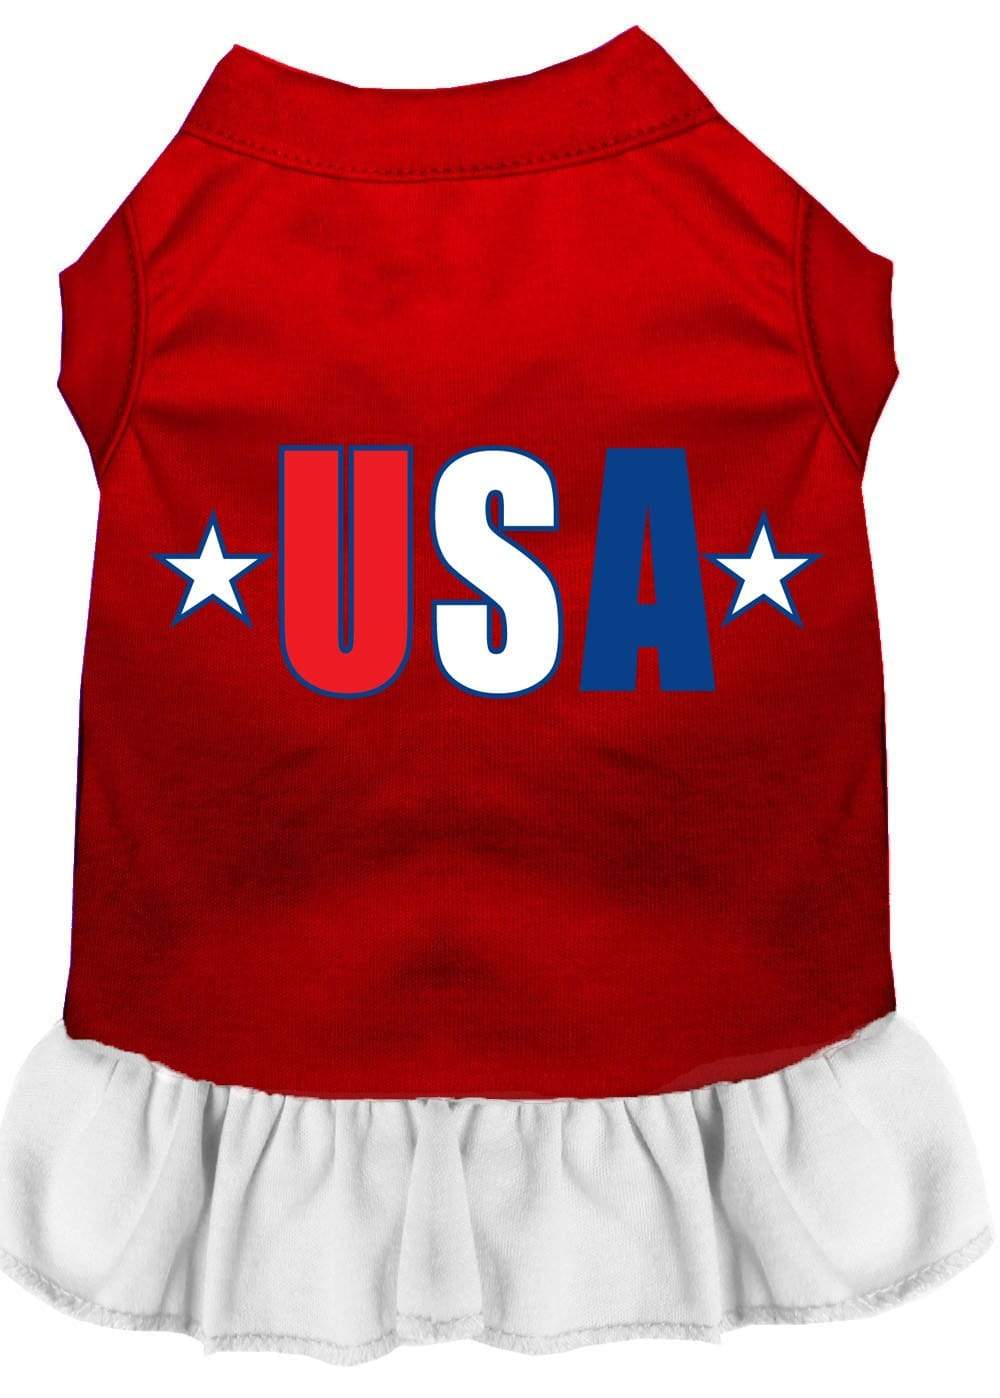 Doggy Stylz Dog-products Apparel Red With White / XXL Usa Star Screen Print Dress Baby Blue